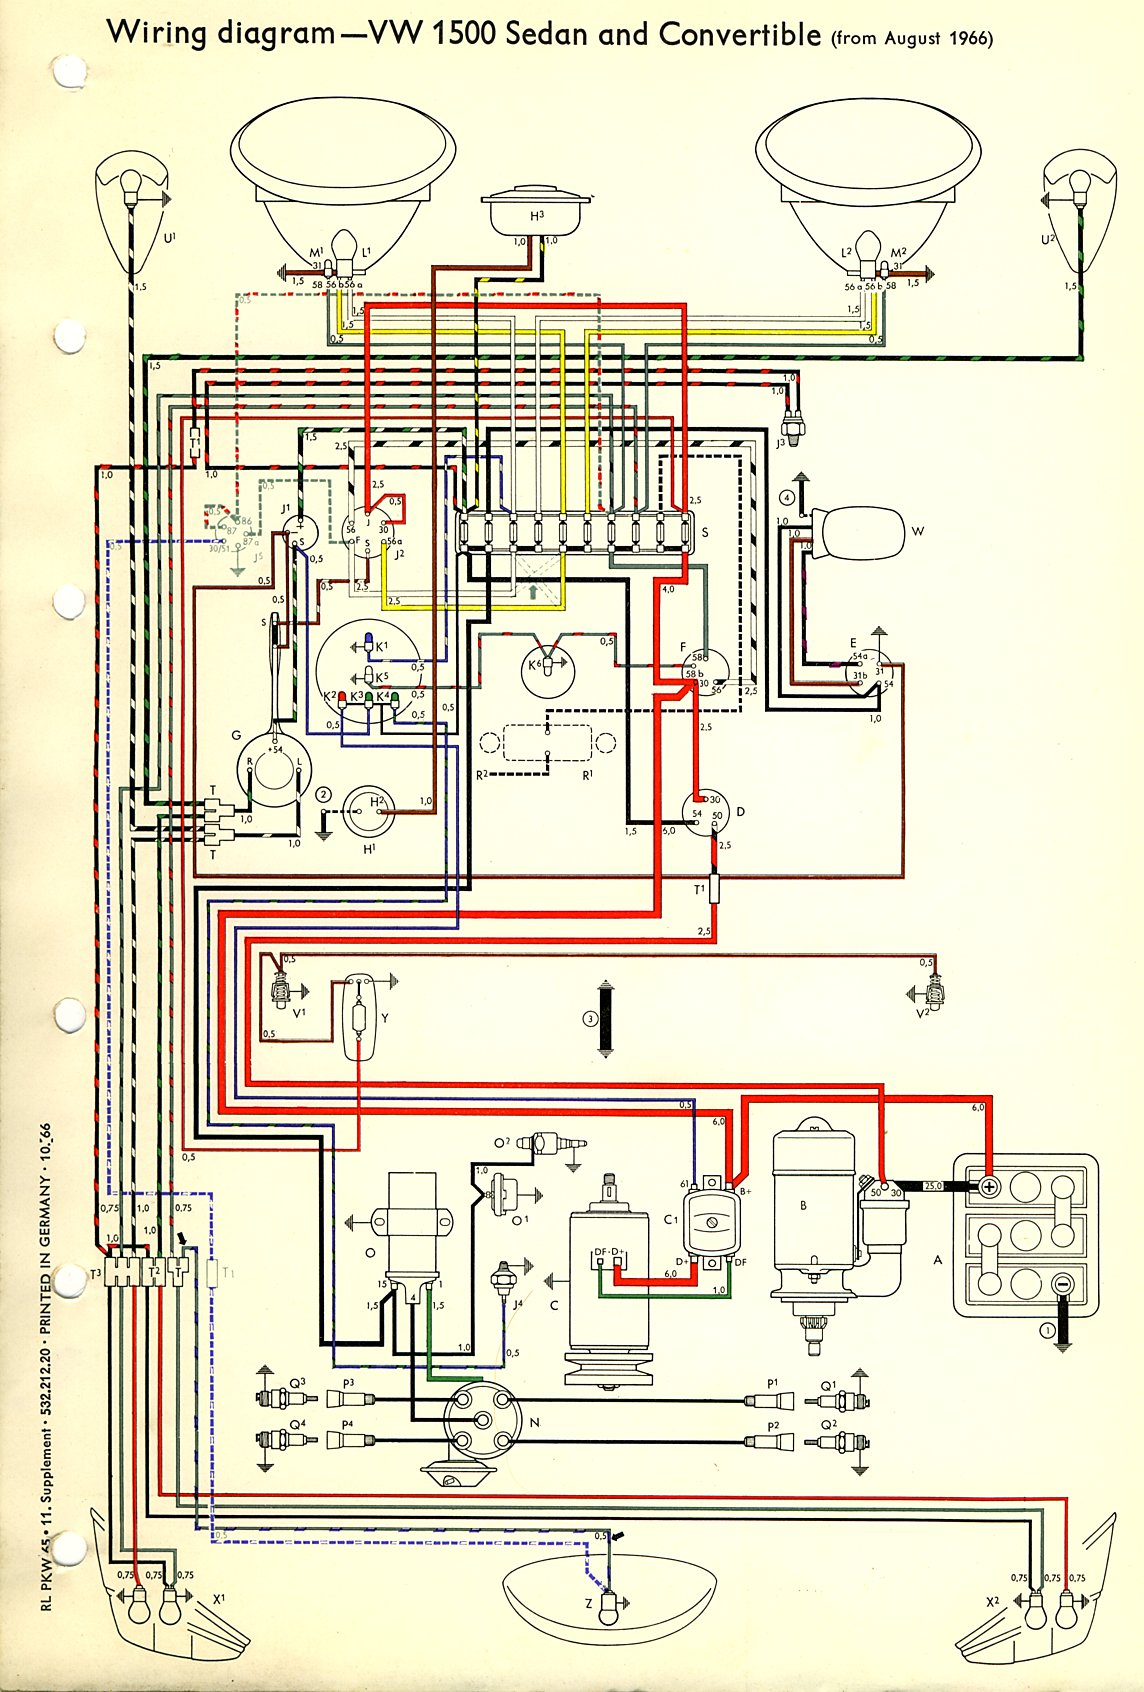 thesamba com type 1 wiring diagrams rh thesamba com Classic VW Beetle Diagrams VW Wiring Harness Diagram